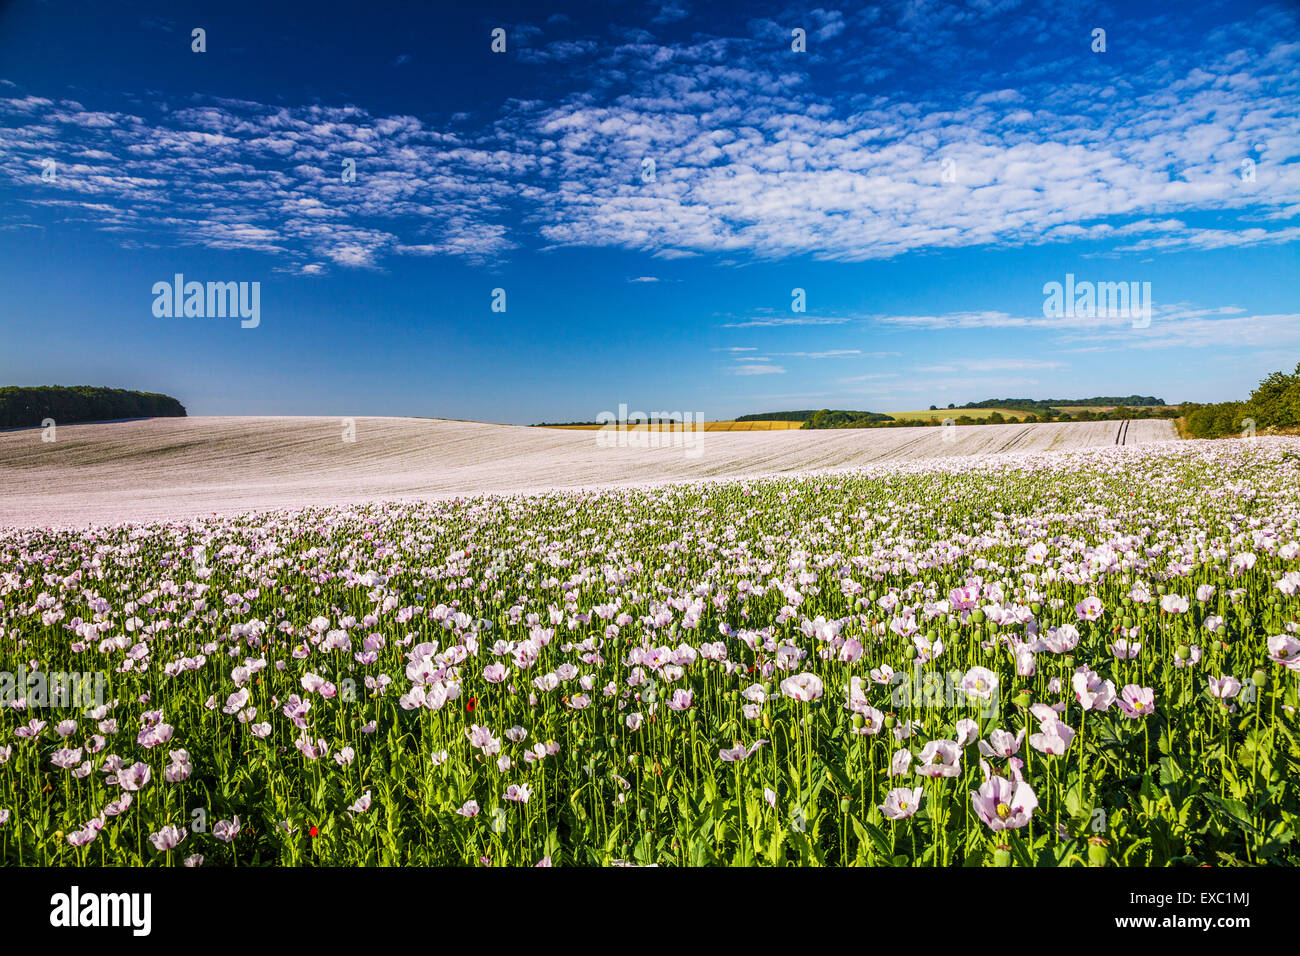 Field of cultivated white poppies near Rockley in Wiltshire. Stock Photo